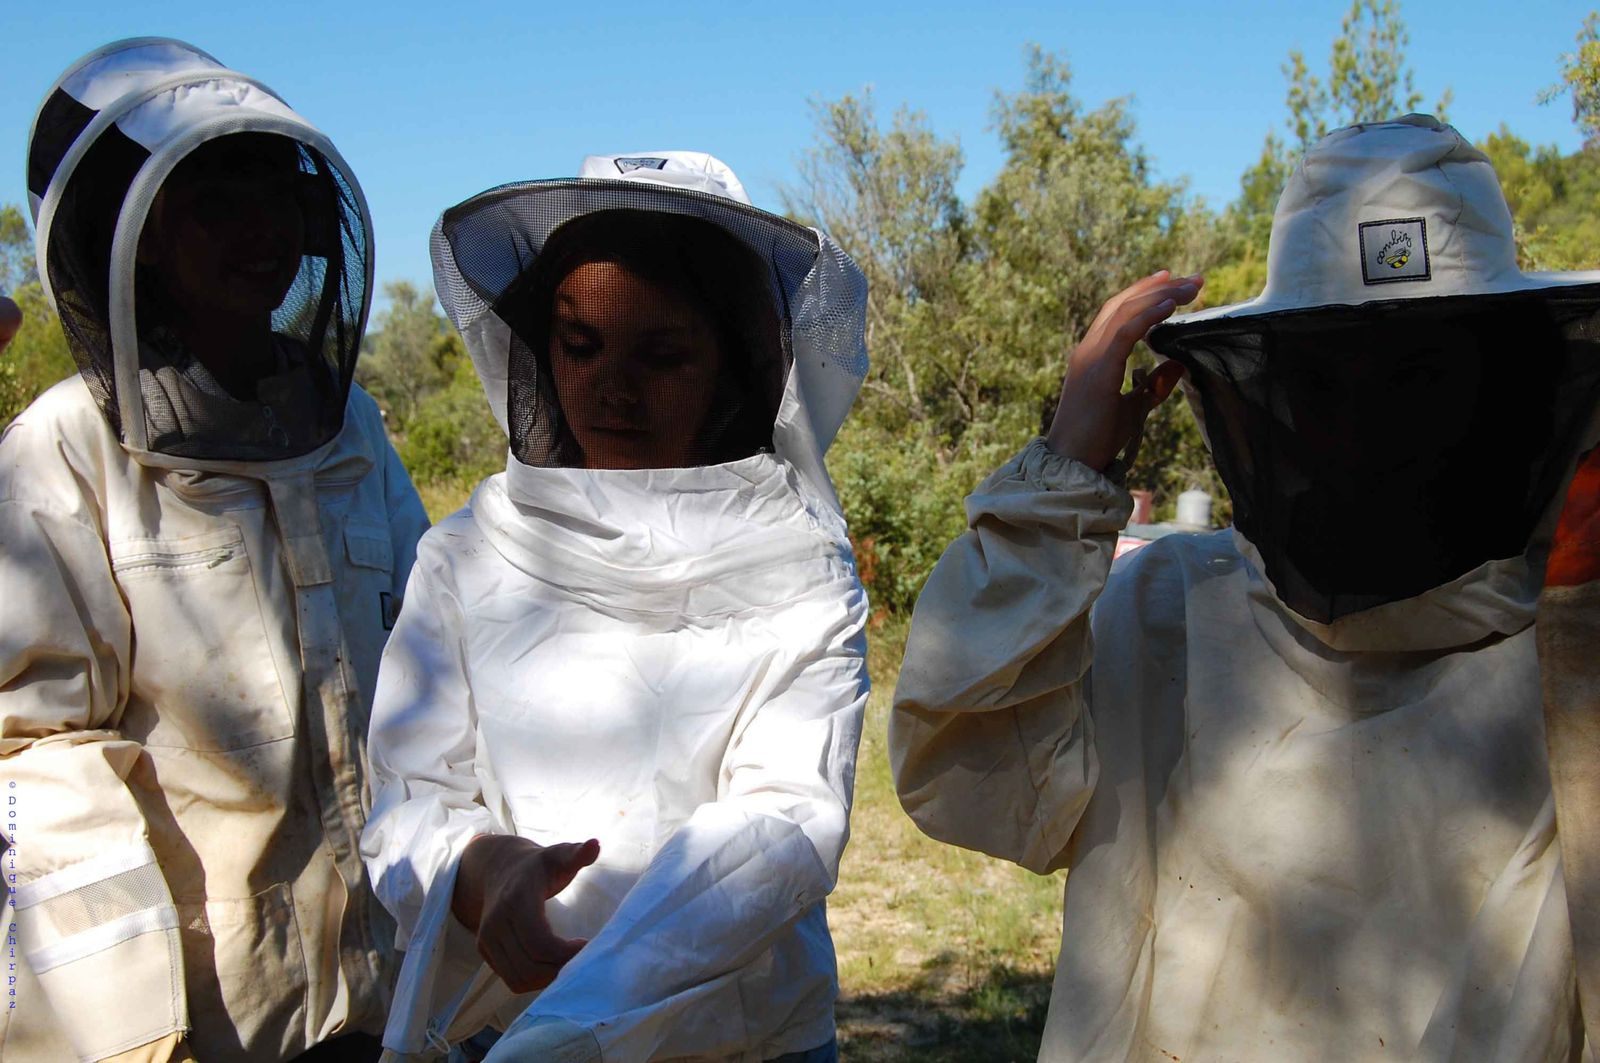 Theme 2 : Beekeeping over the time, the ethnobiologic aspects and particularly on the intergenerational transmission of knowledge / Ethnobiologie et transmission intergénérationnelle de l'apiculture / Béryl Coulombié, Akim Pavageau, Zoé Terrapon, Fanny Mokhnachi, Mathilde Levy-Backes, Lola Werquin